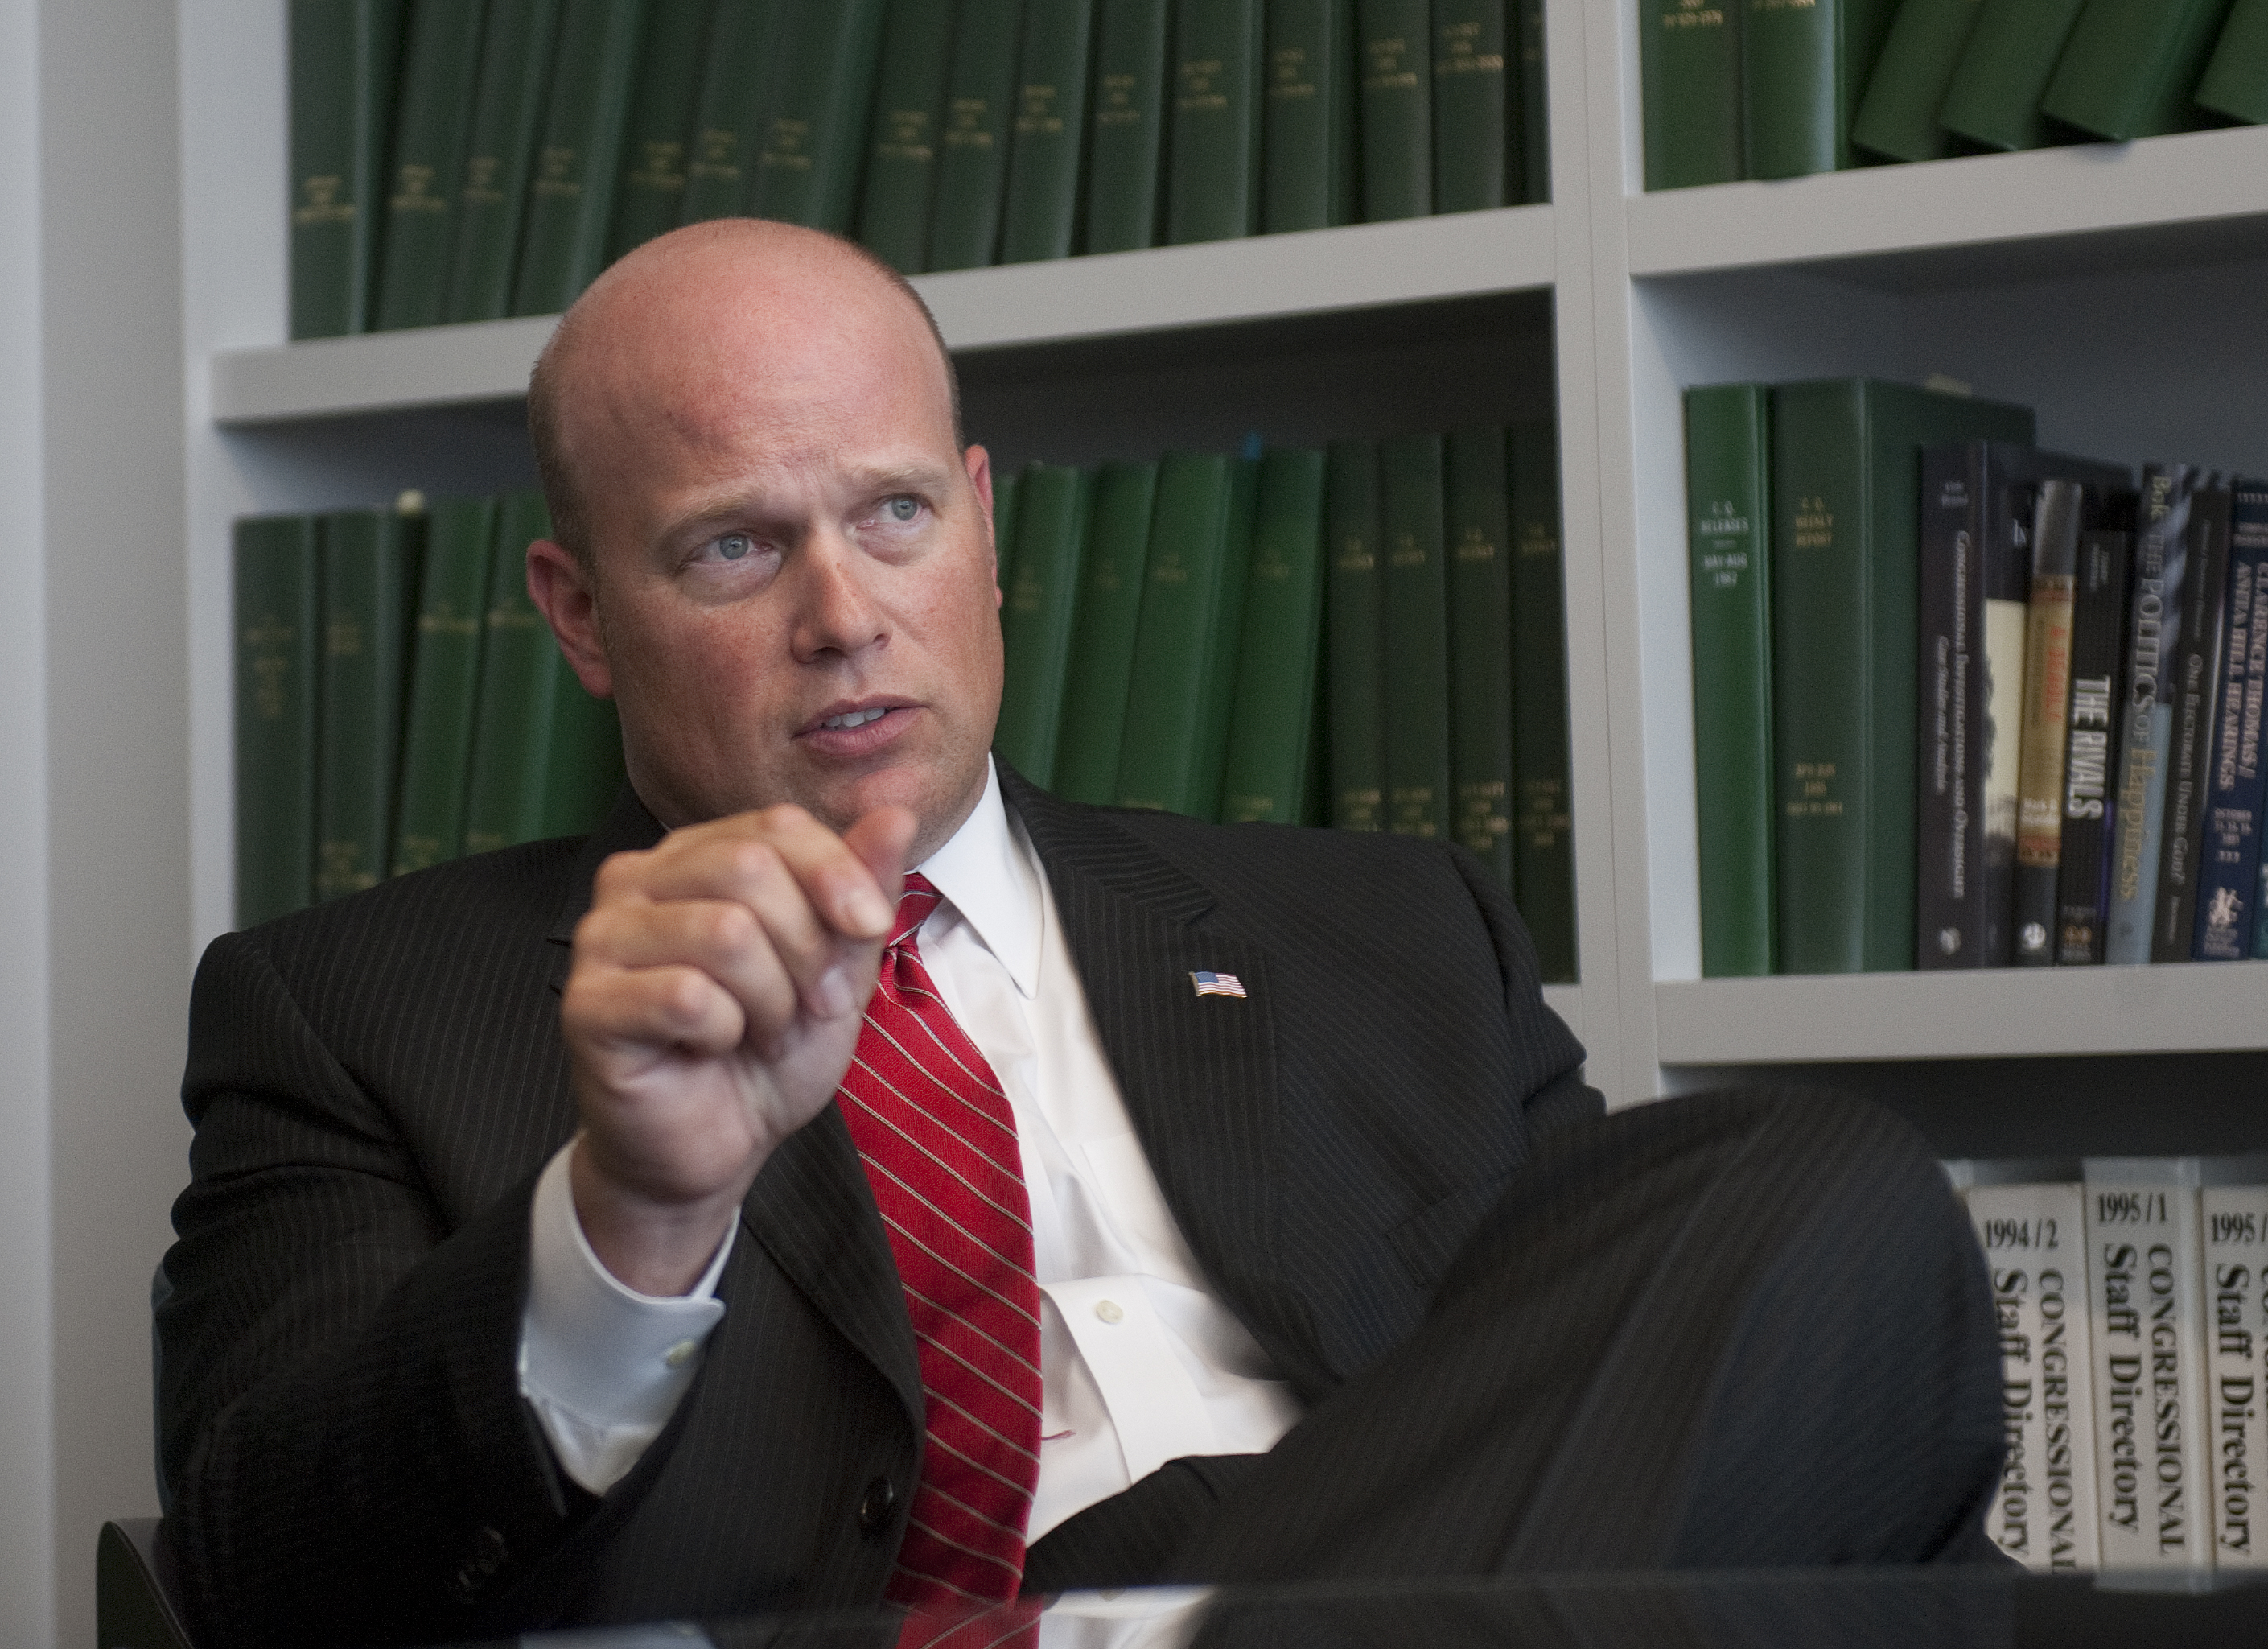 UNITED STATES - July 23: Matt Whitaker (R) Iowa is interviewed at Roll Call office in Washington, D.C. (Photo By Douglas Graham/CQ Roll Call)